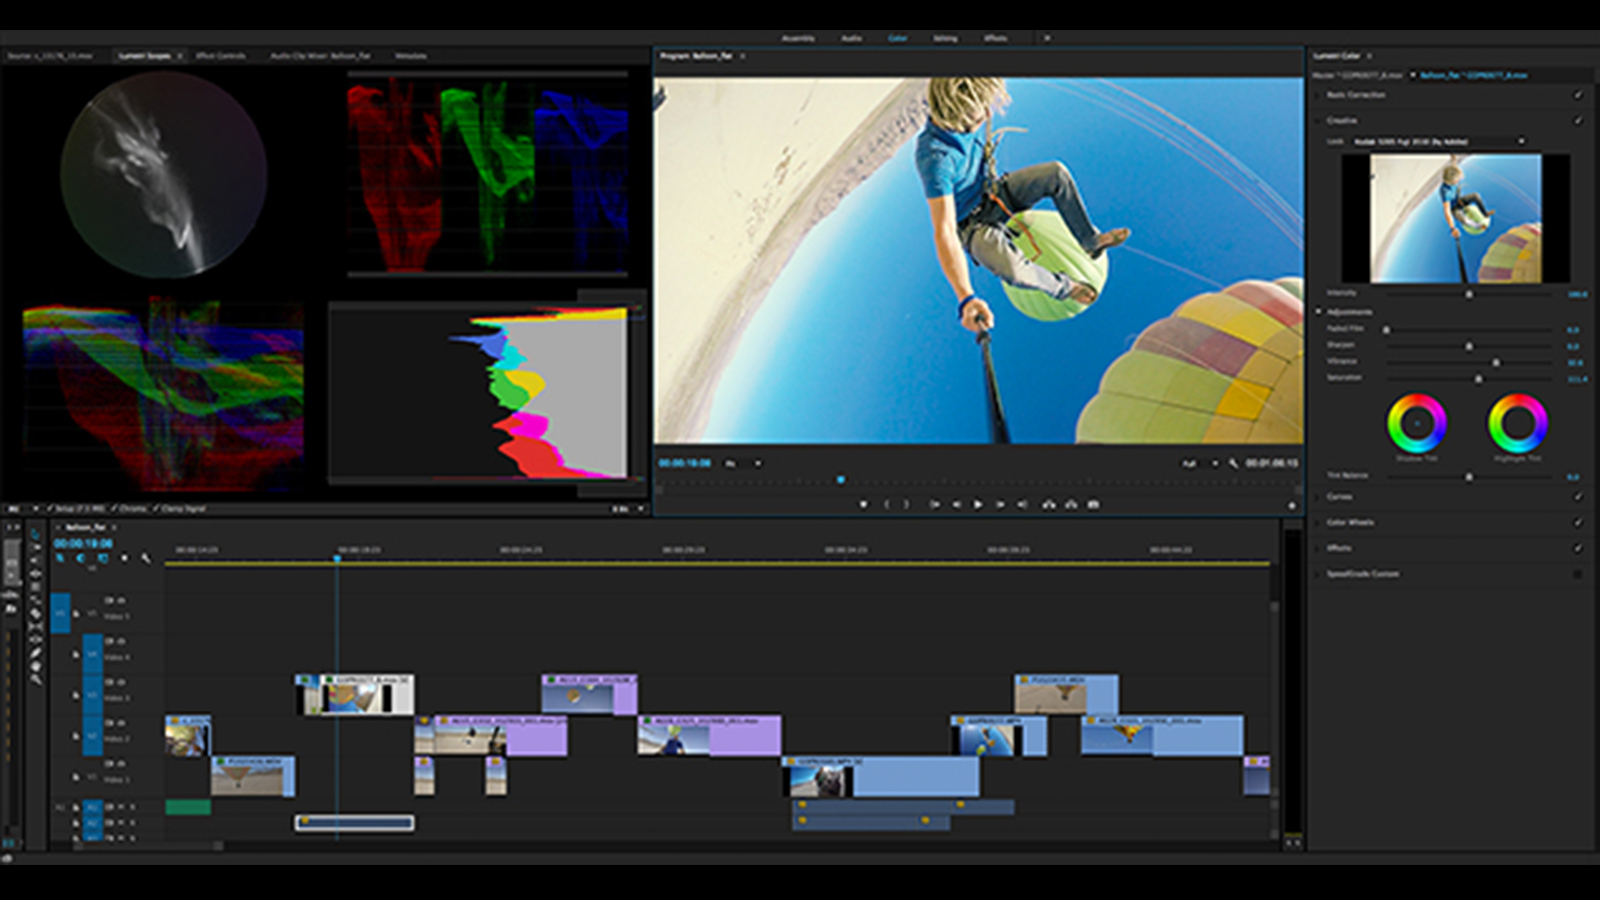 New features coming to premiere pro cc nab 2015 cinema5d adobe has announced major updates that will be coming soon to premiere pro ccuart Image collections